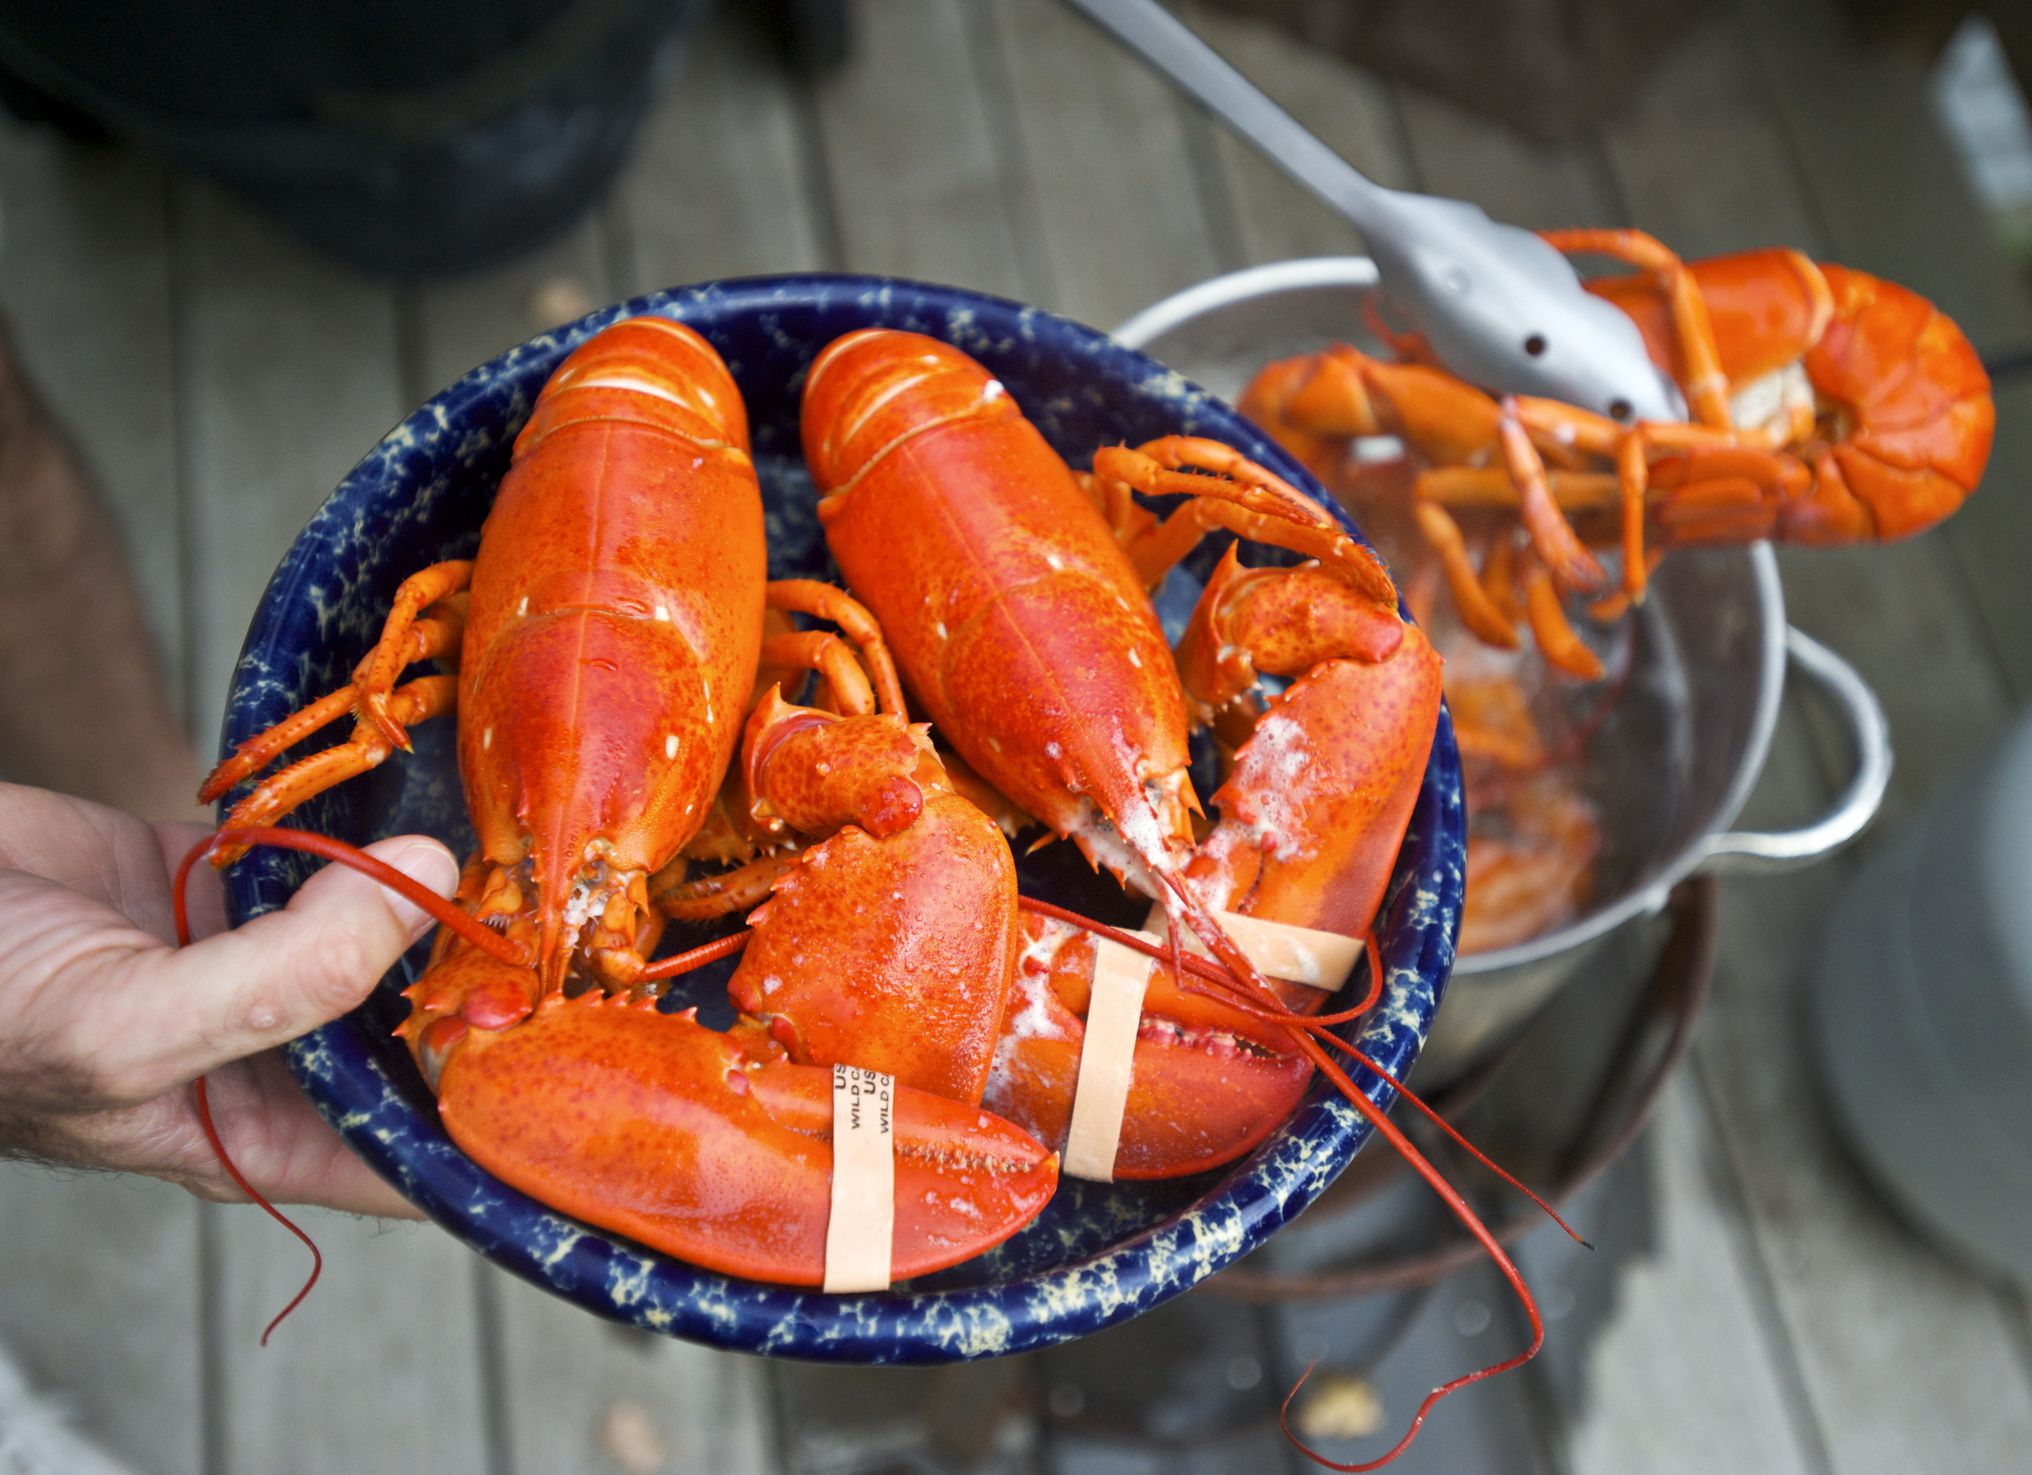 Lobster equivalents measures and famous recipes for Best time to visit maine for lobster